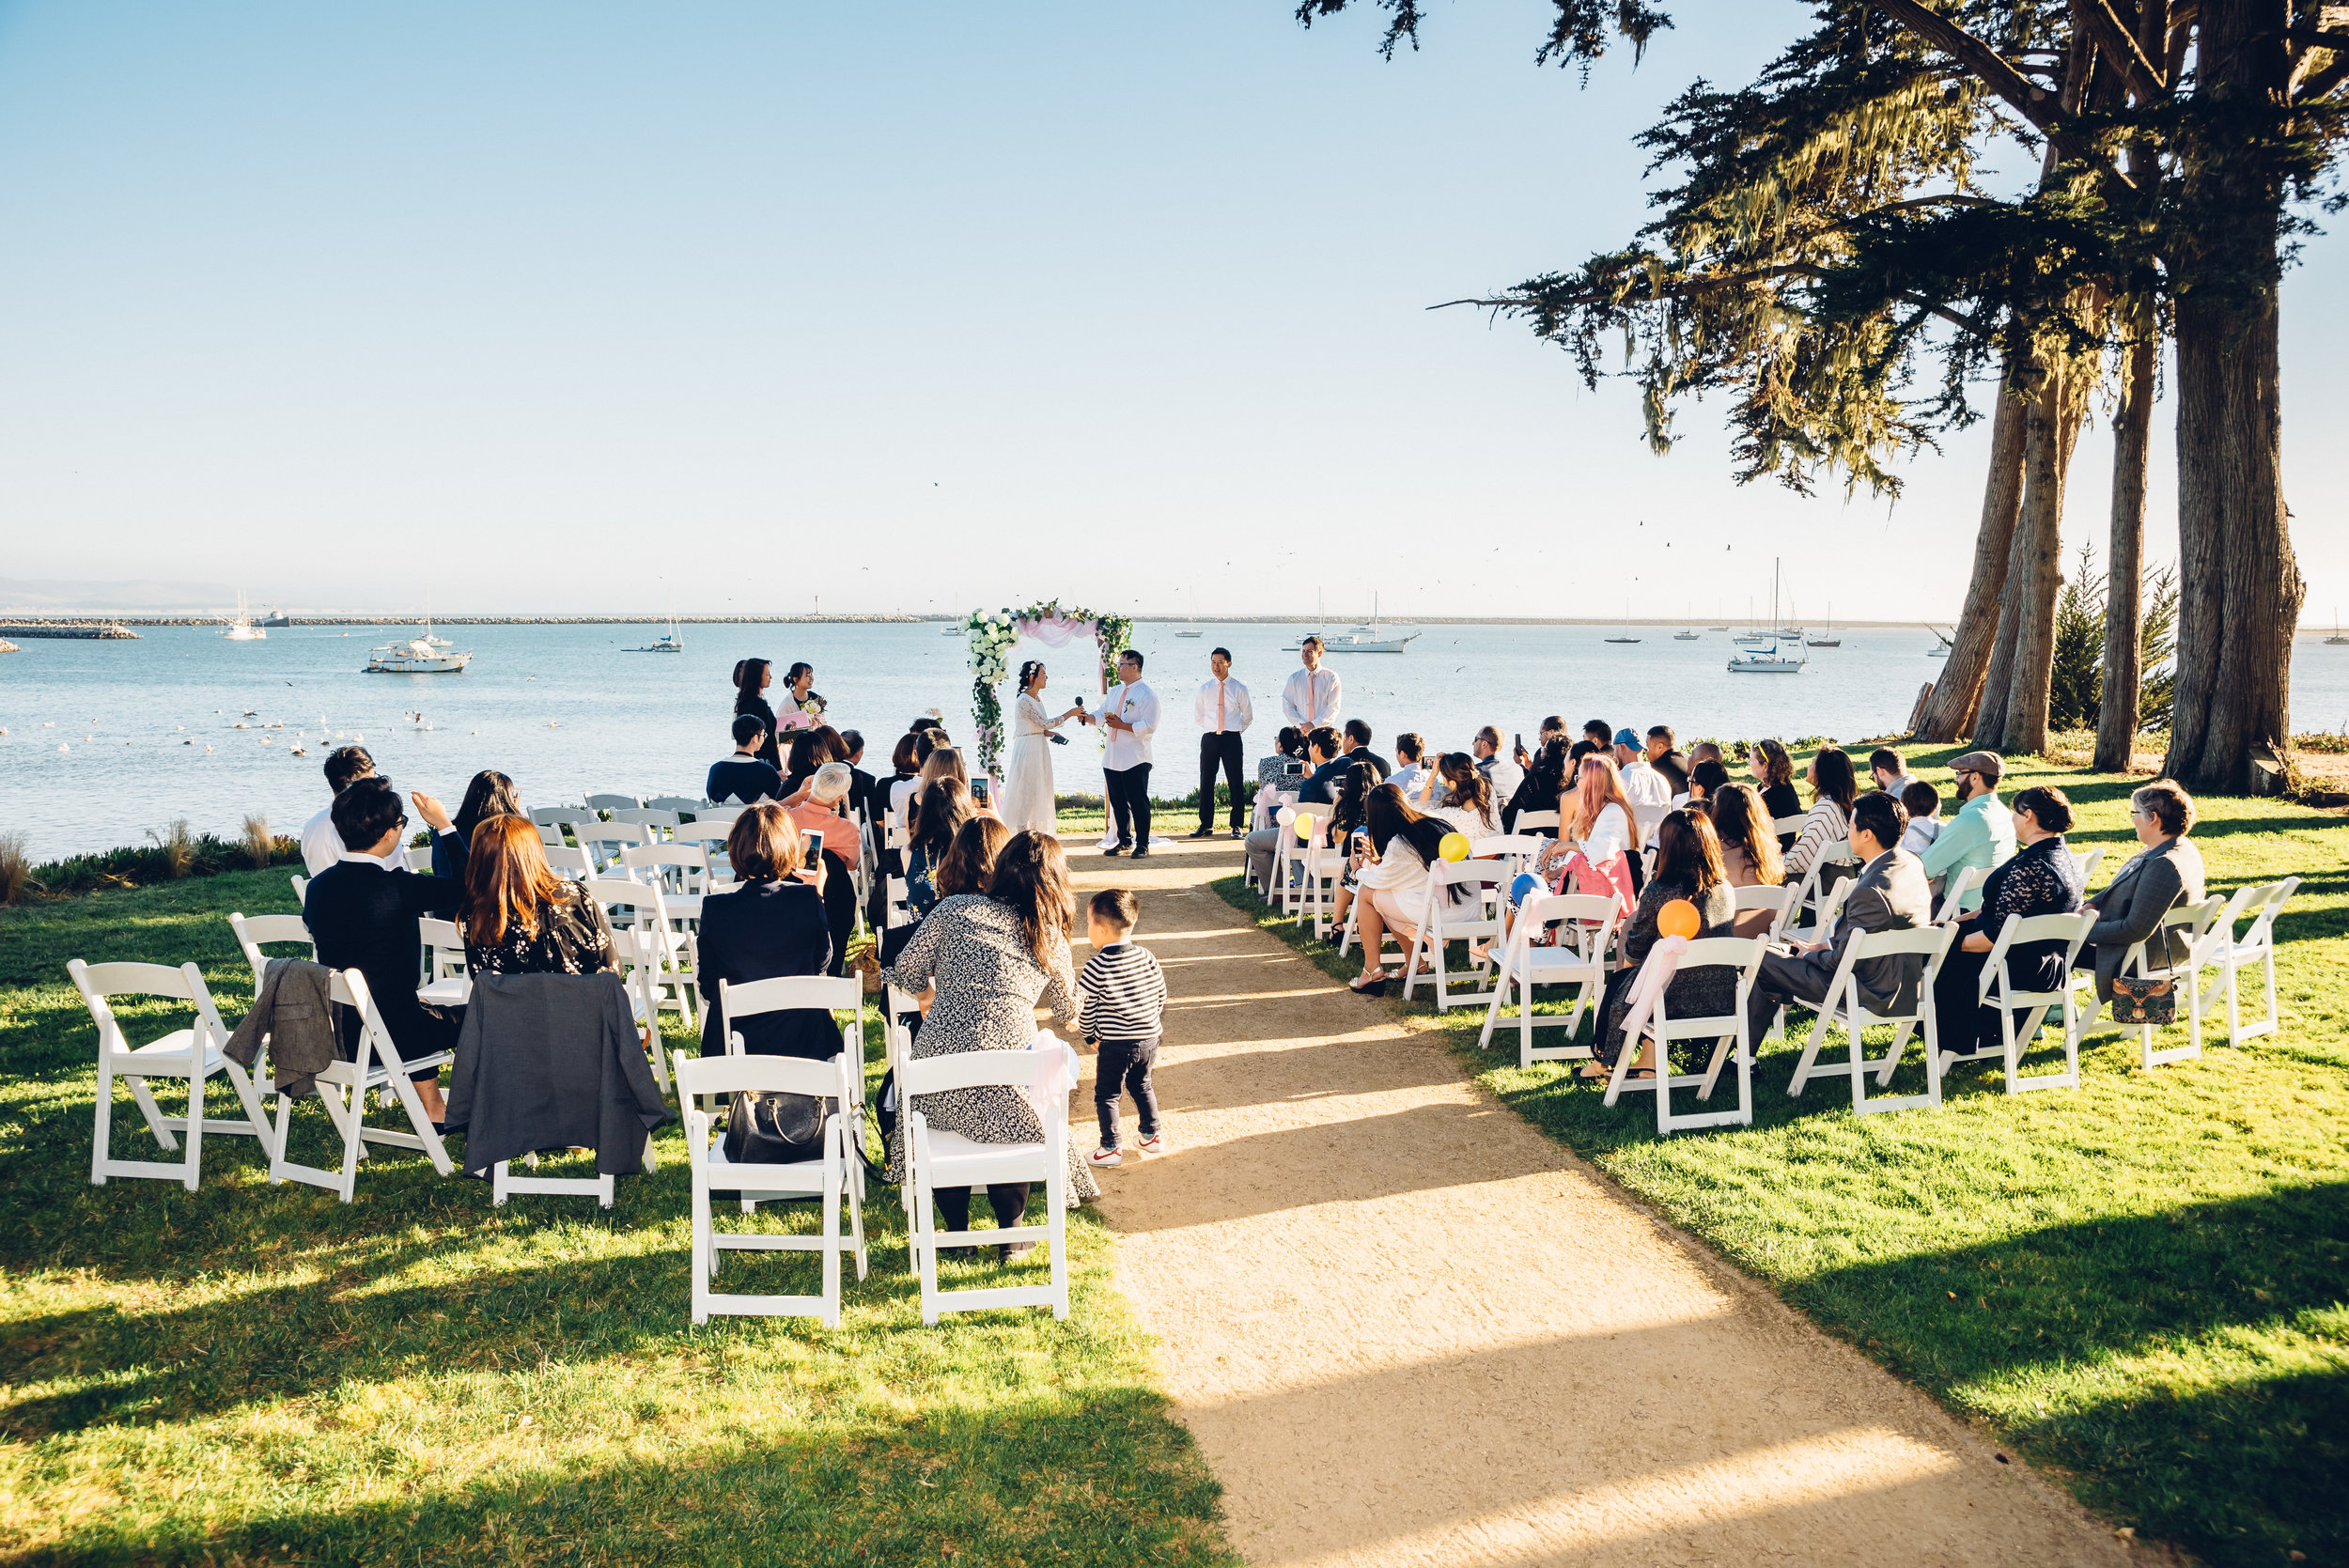 Kristy & Charles - Wedding in Half Moon Bay, CA